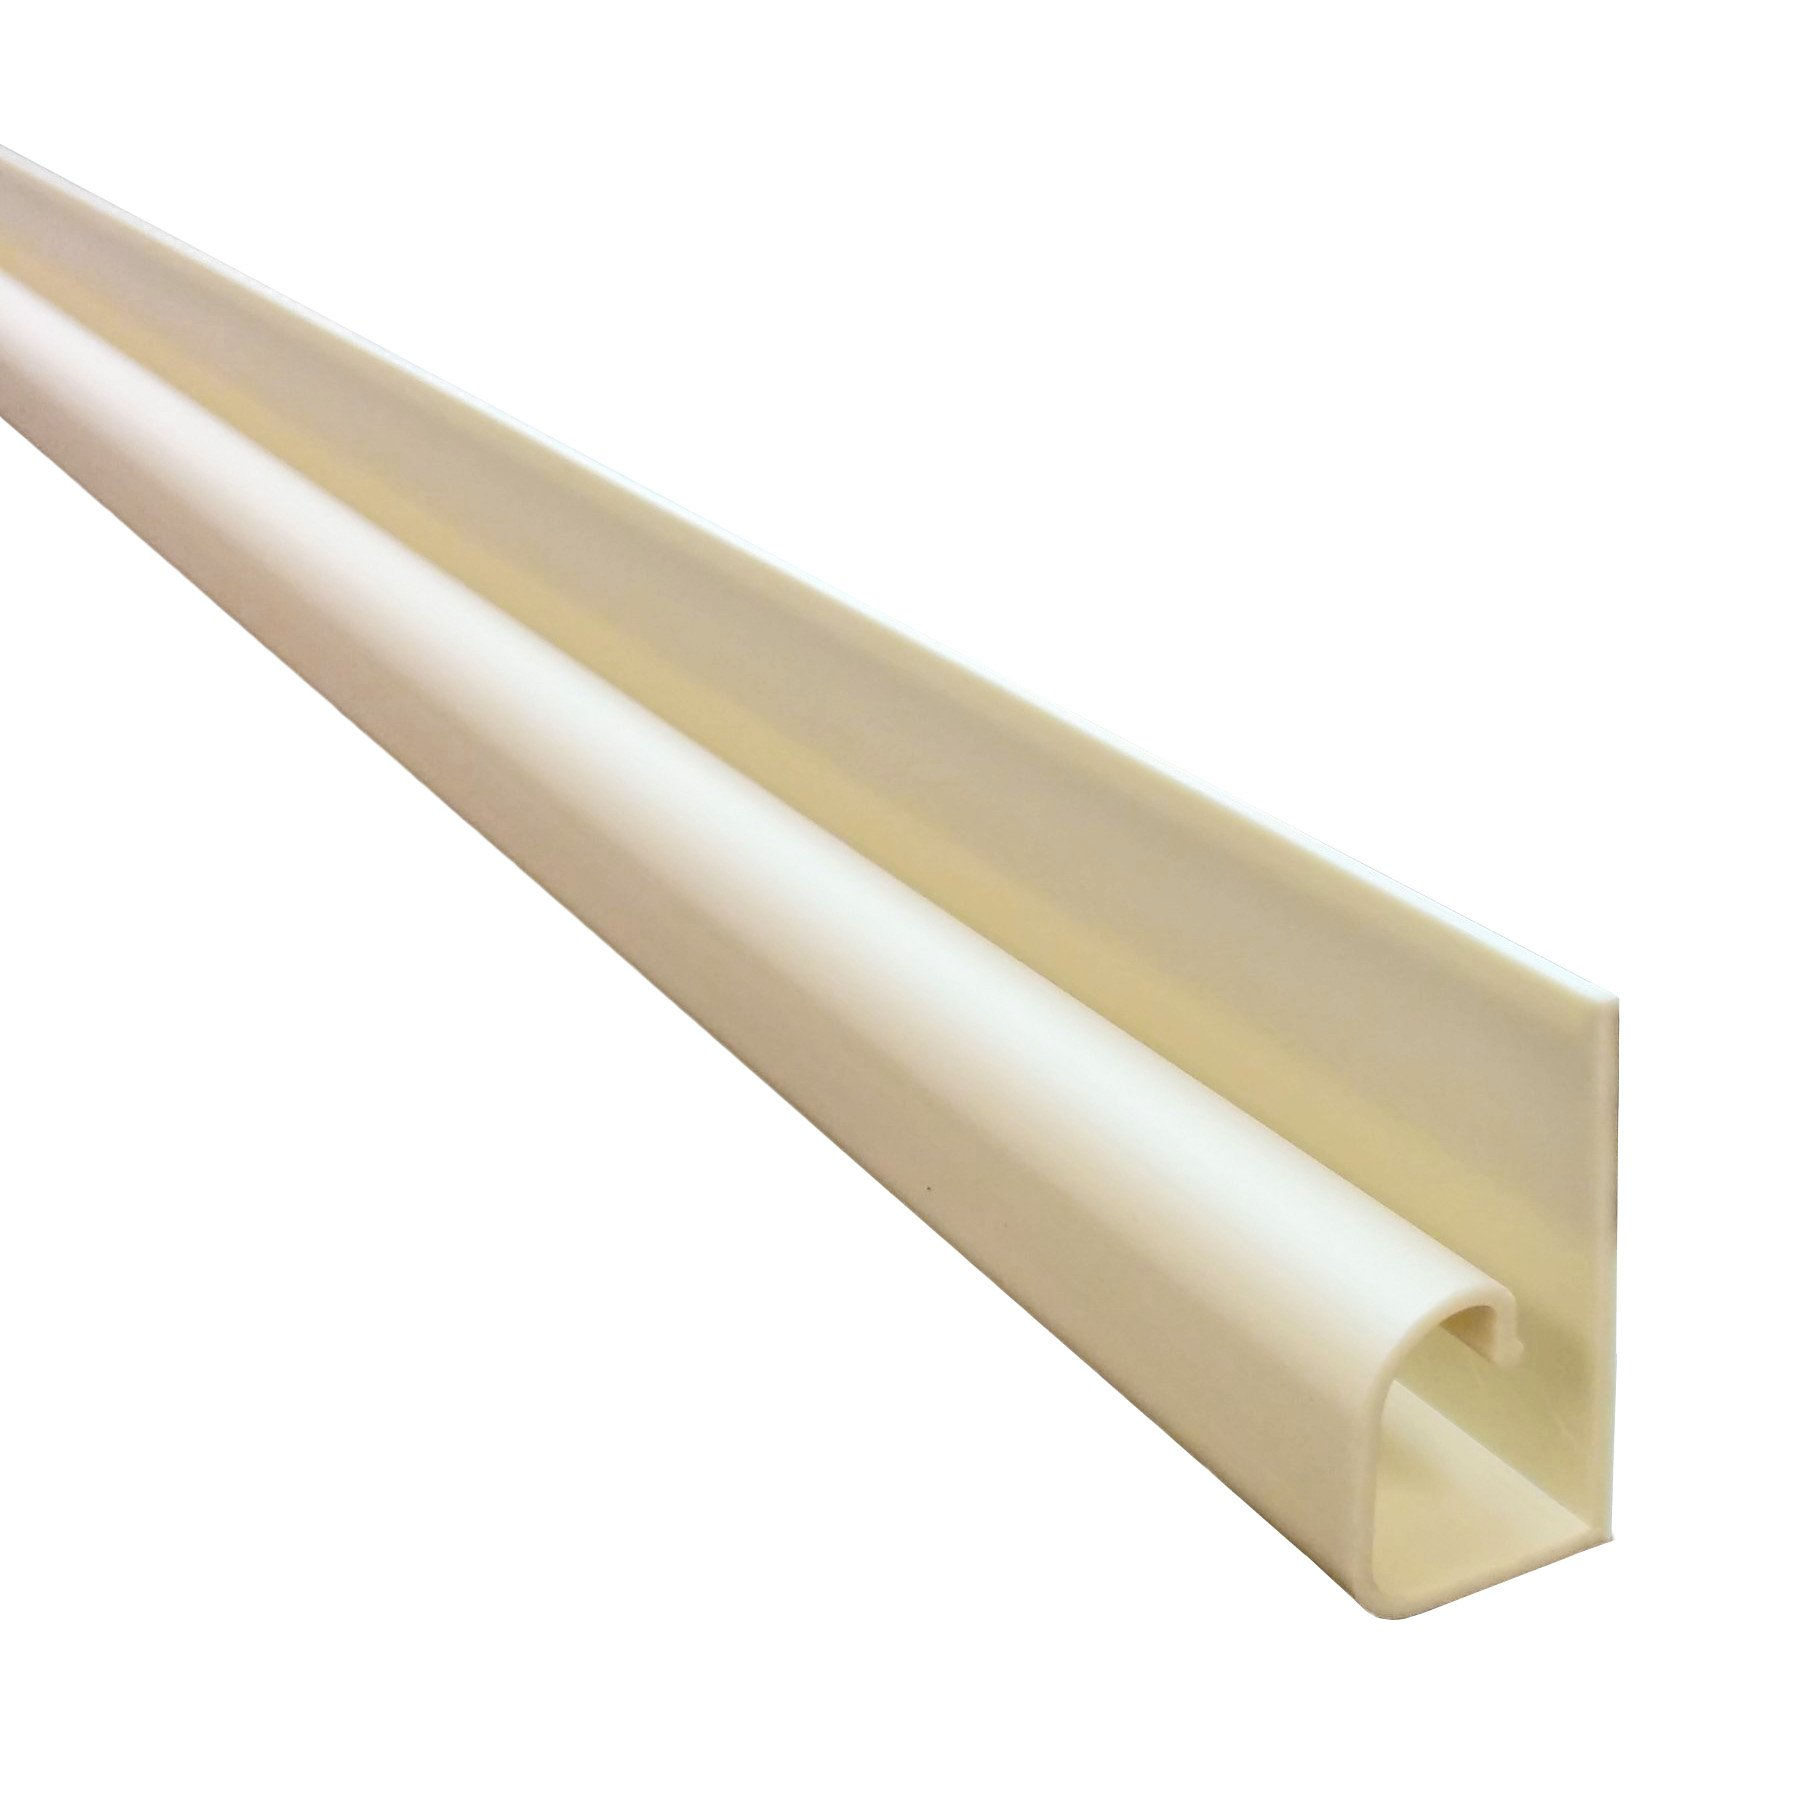 Small Hook Channel Cable Raceway - 20 Pieces - 59'' - Ivory by Electriduct